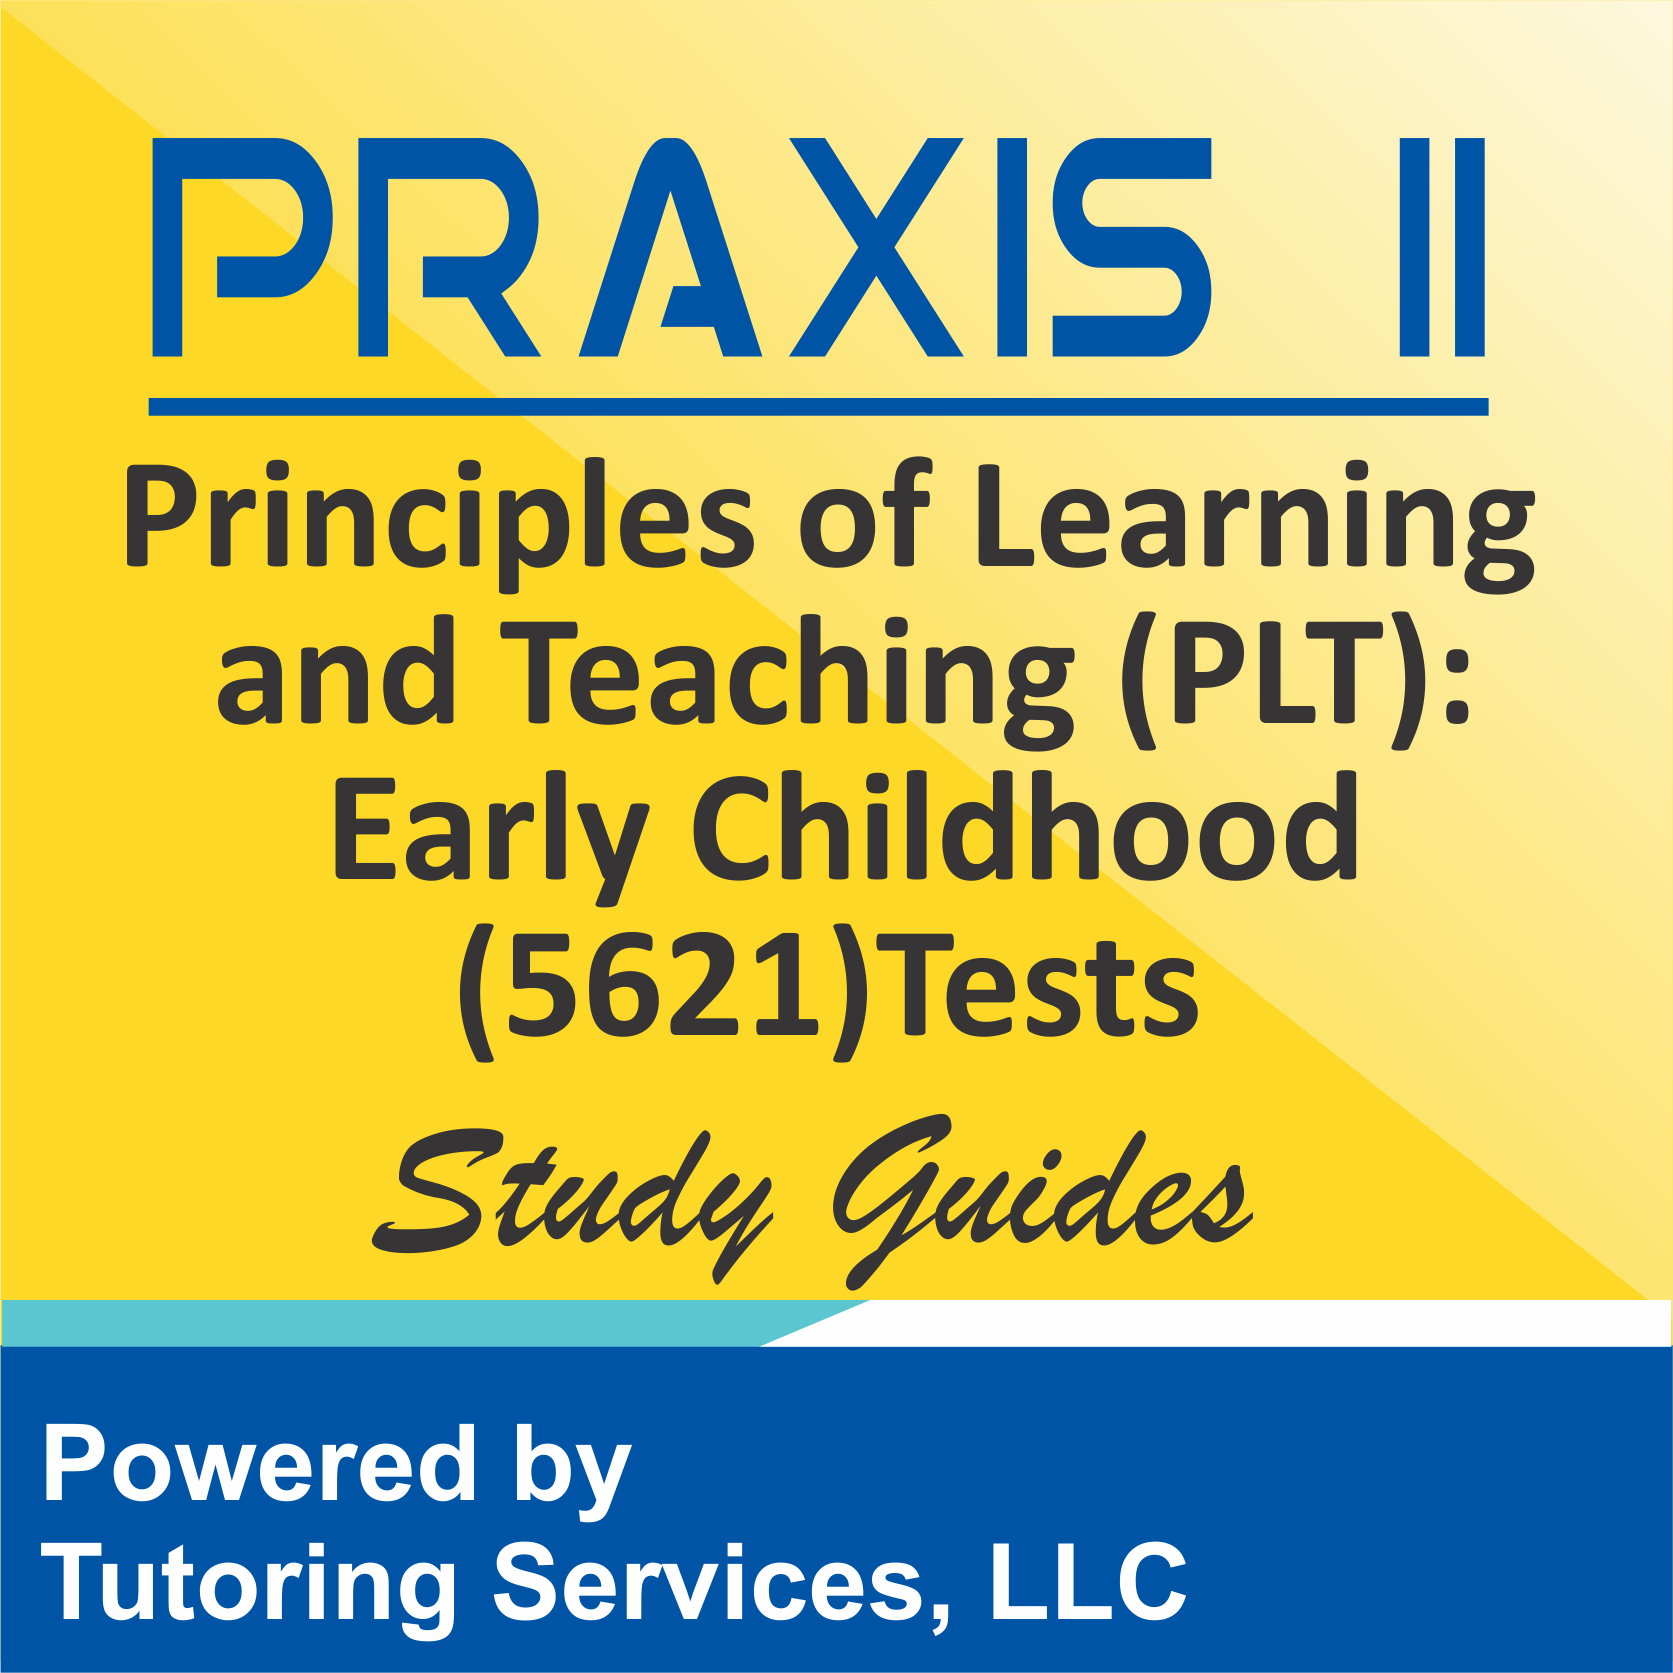 Praxis II Principles of Learning and Teaching: Early Childhood (5621) Test Information